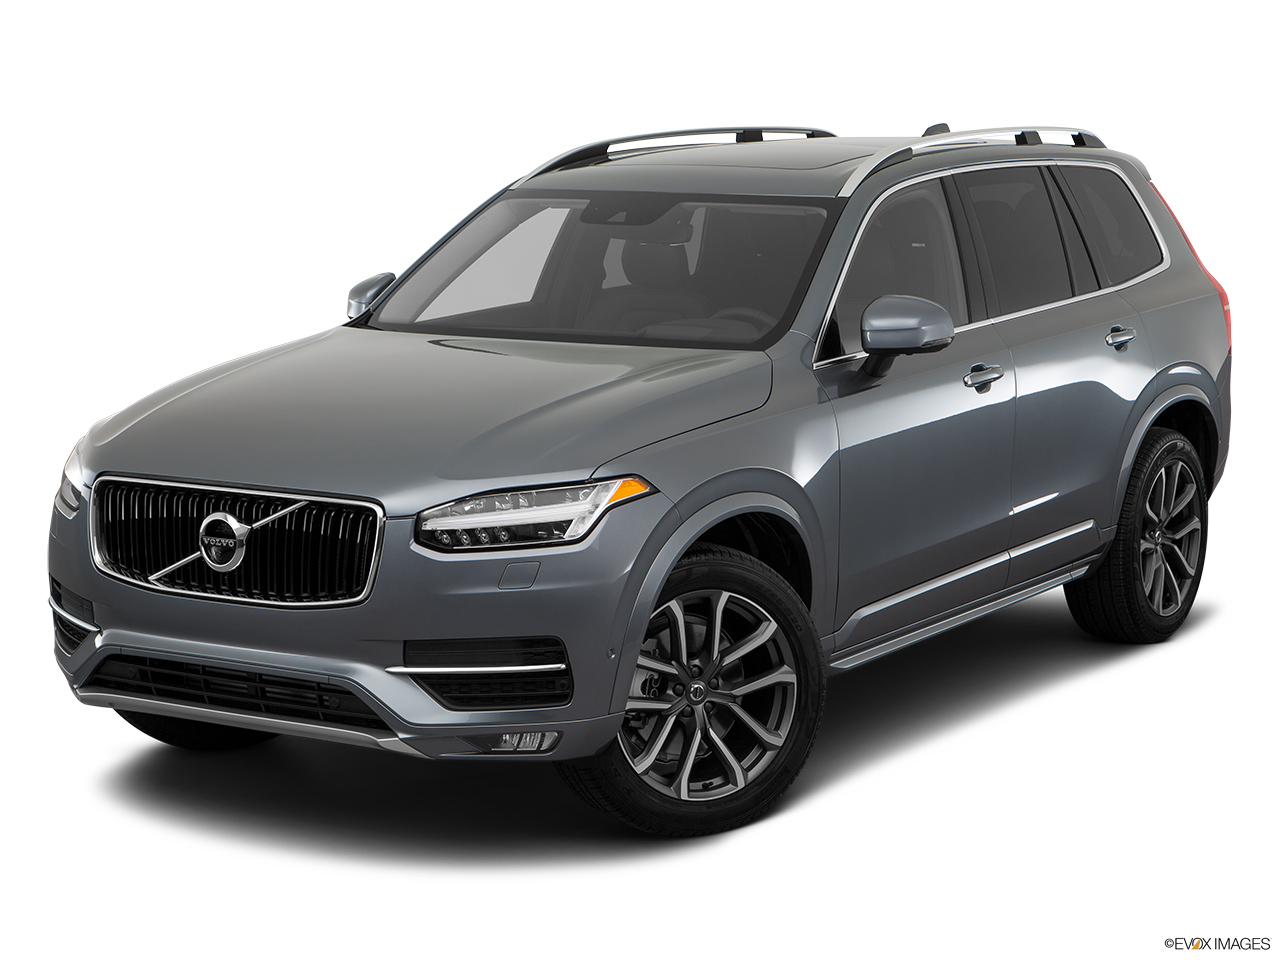 volvo xc90 2018 t6 excellence in uae  new car prices  specs  reviews  u0026 photos